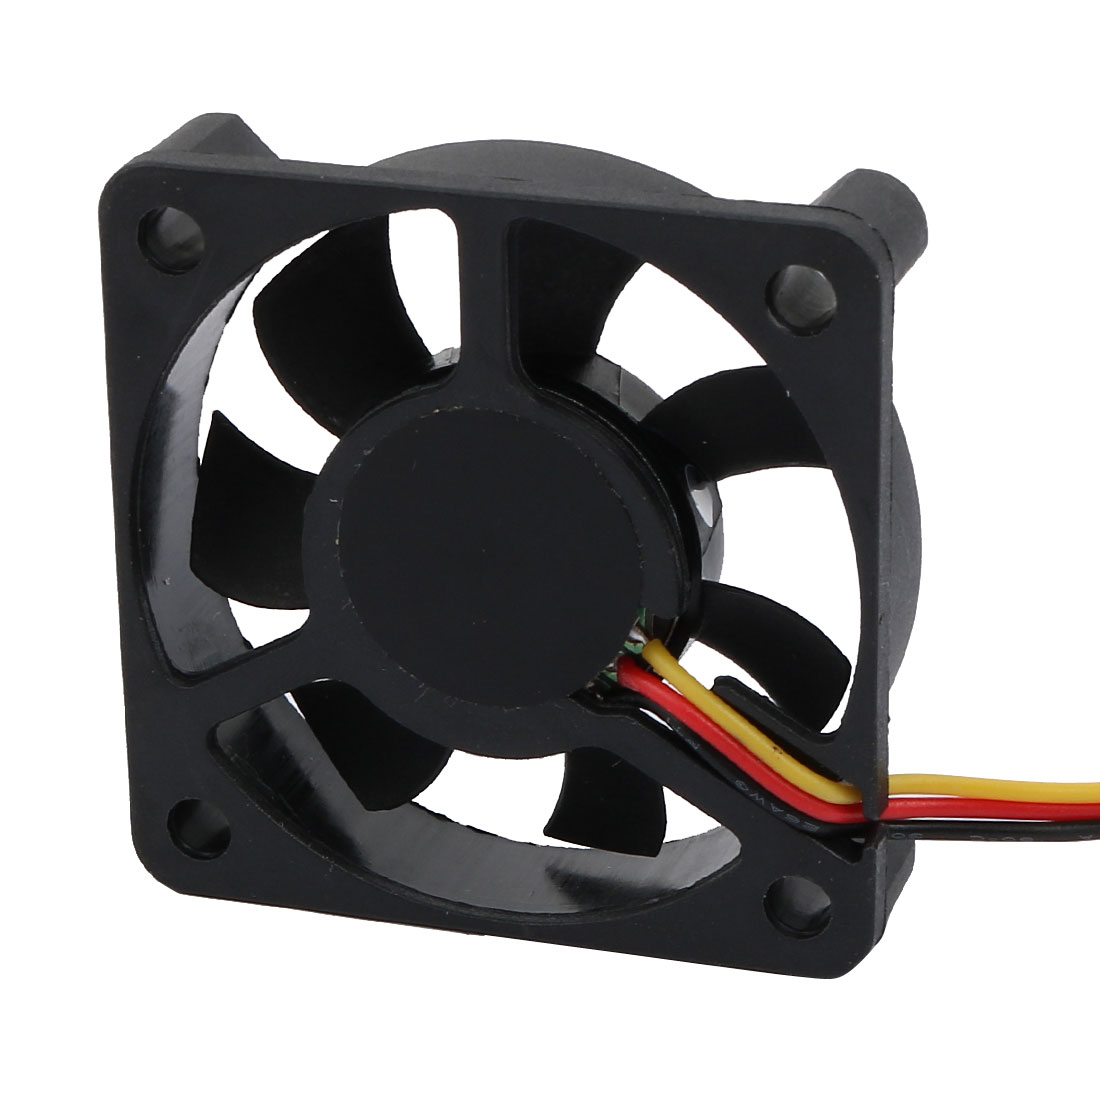 7-vanes Heatsinks Cooling Fan for PC Computer CPU Cooler with Cable Black